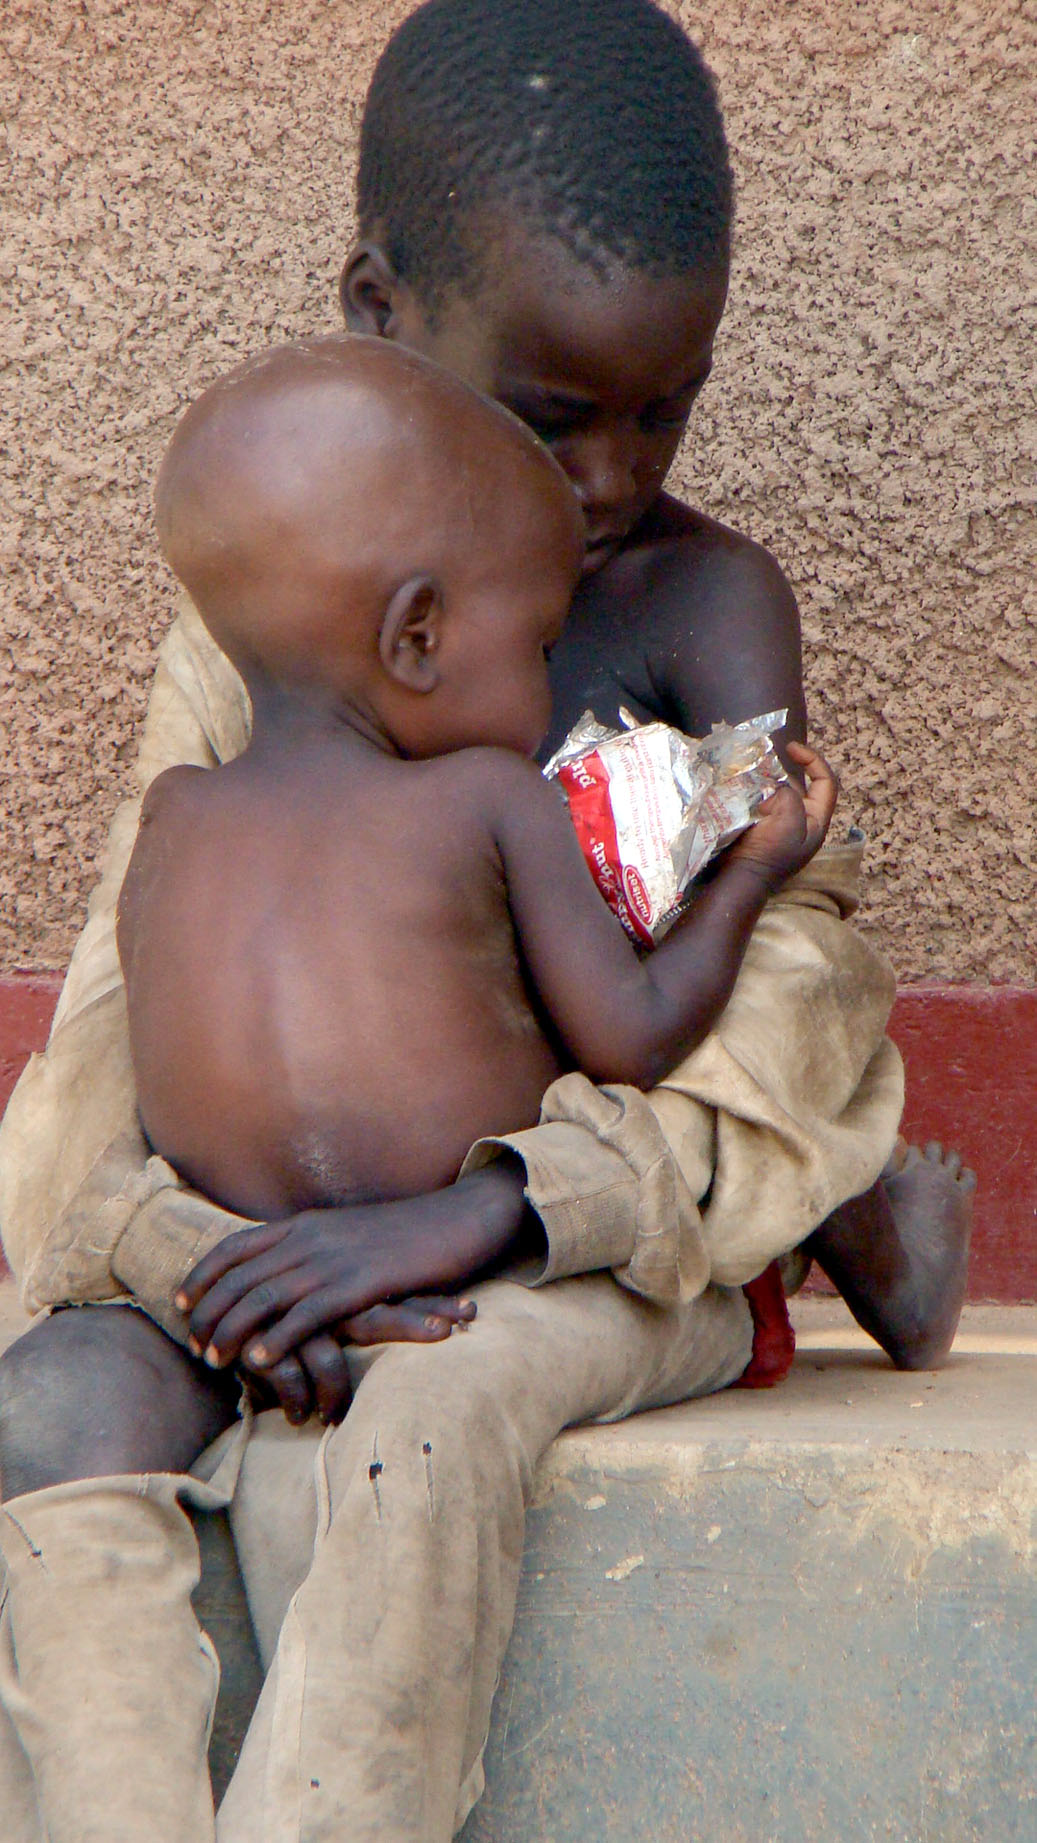 Two children in northern Uganda's Amuru district share a packet of a nut paste used as a therapeutic food